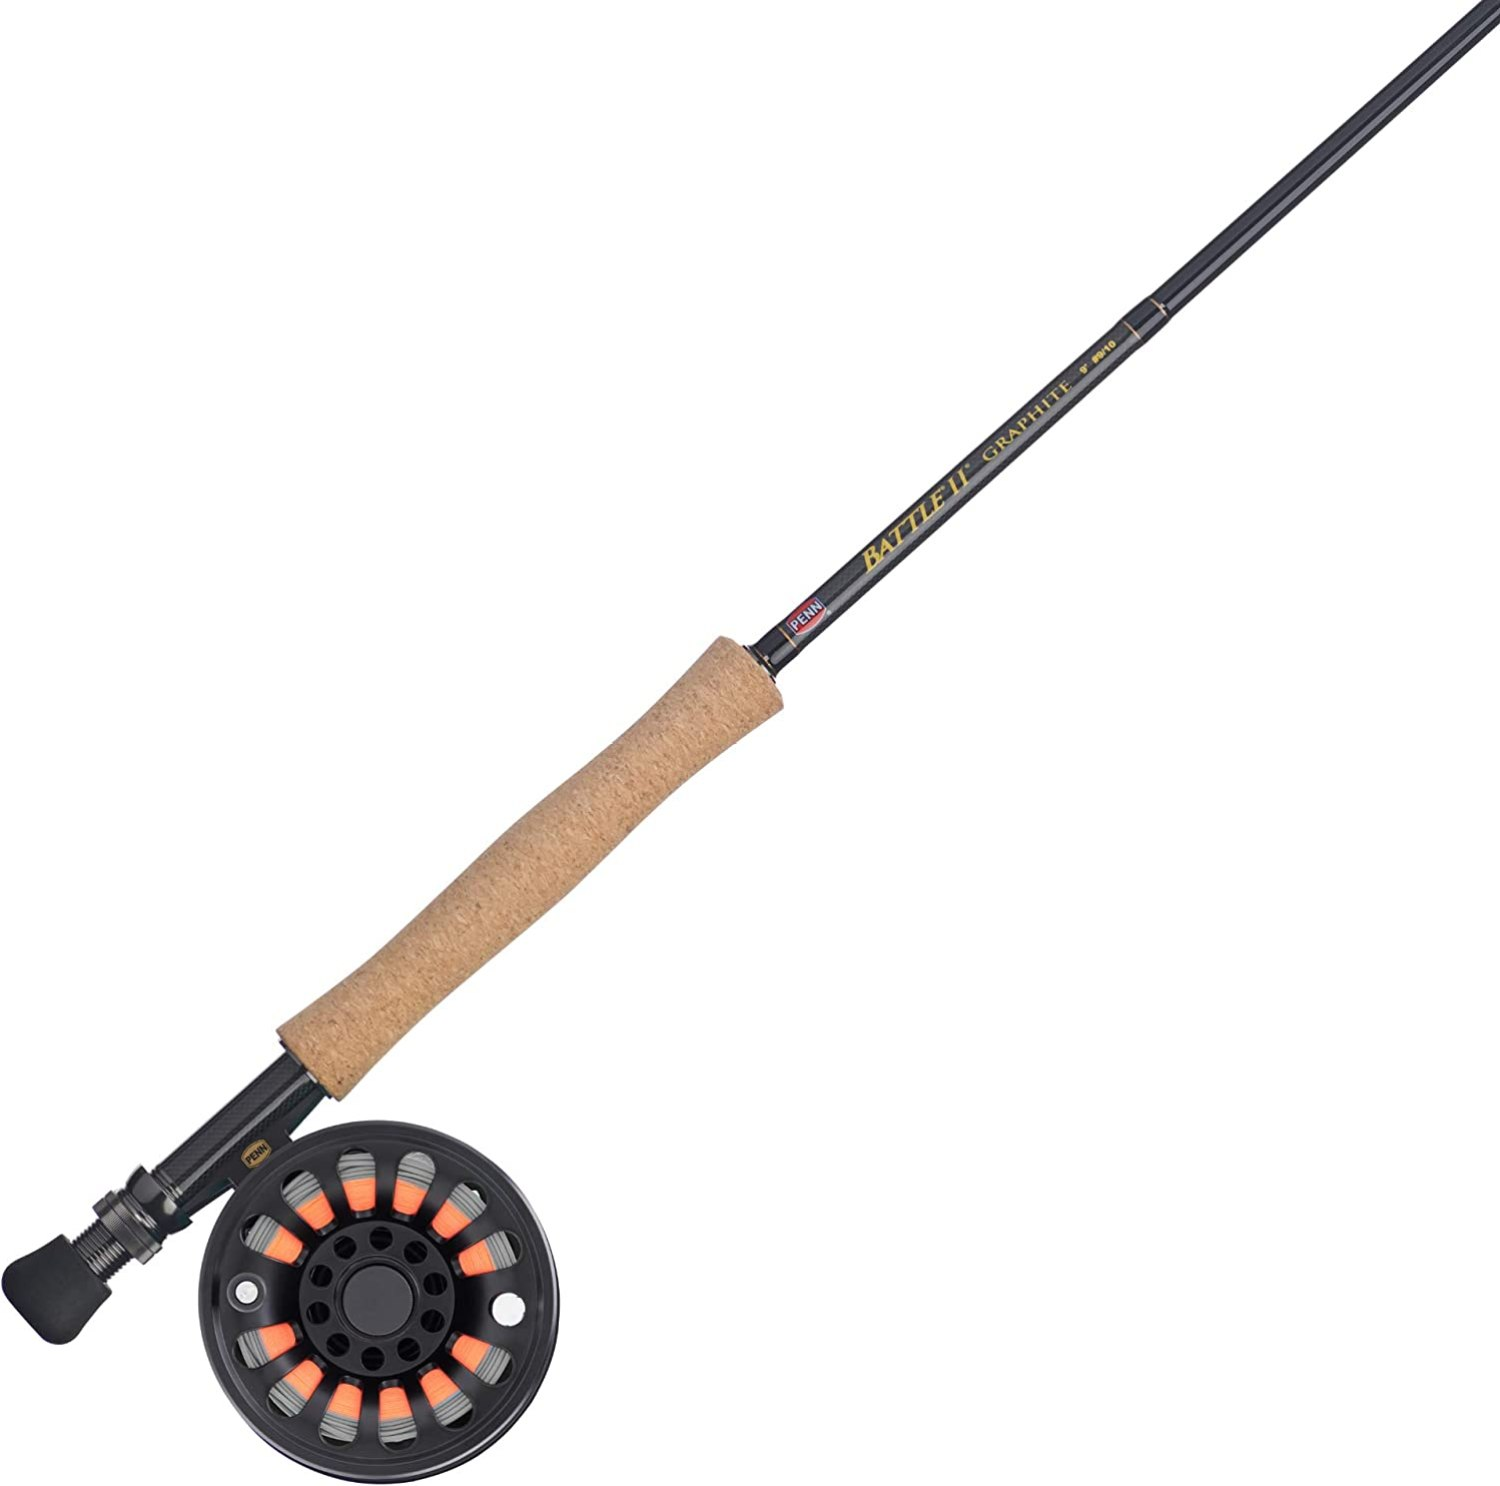 Penn Battle Fly Outfit Reel and Fishing Rod Combo review